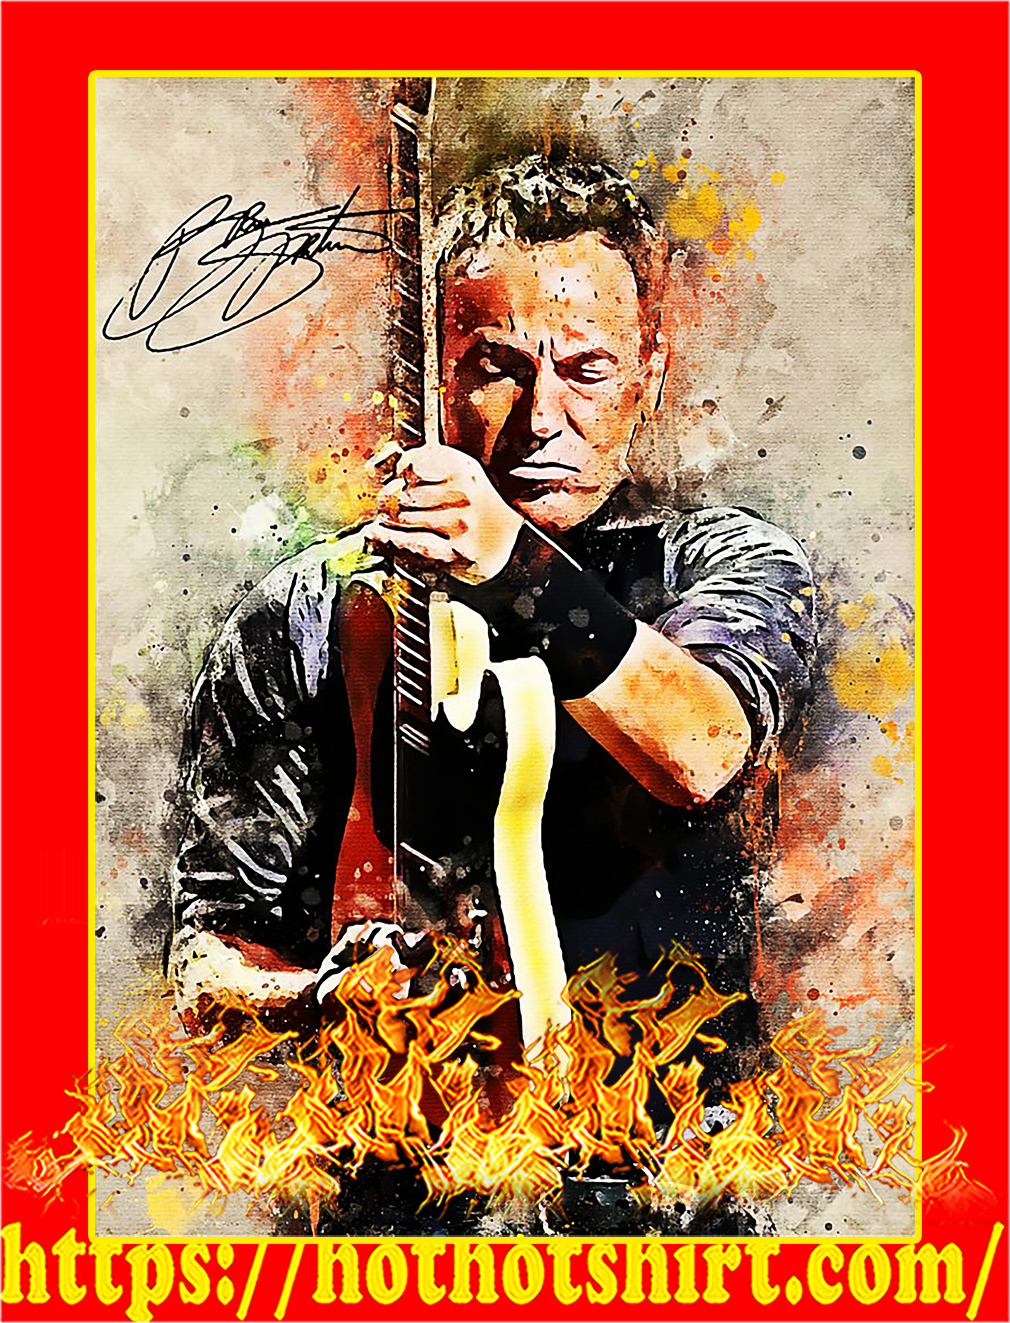 Legend bruce springsteen signature poster - A3